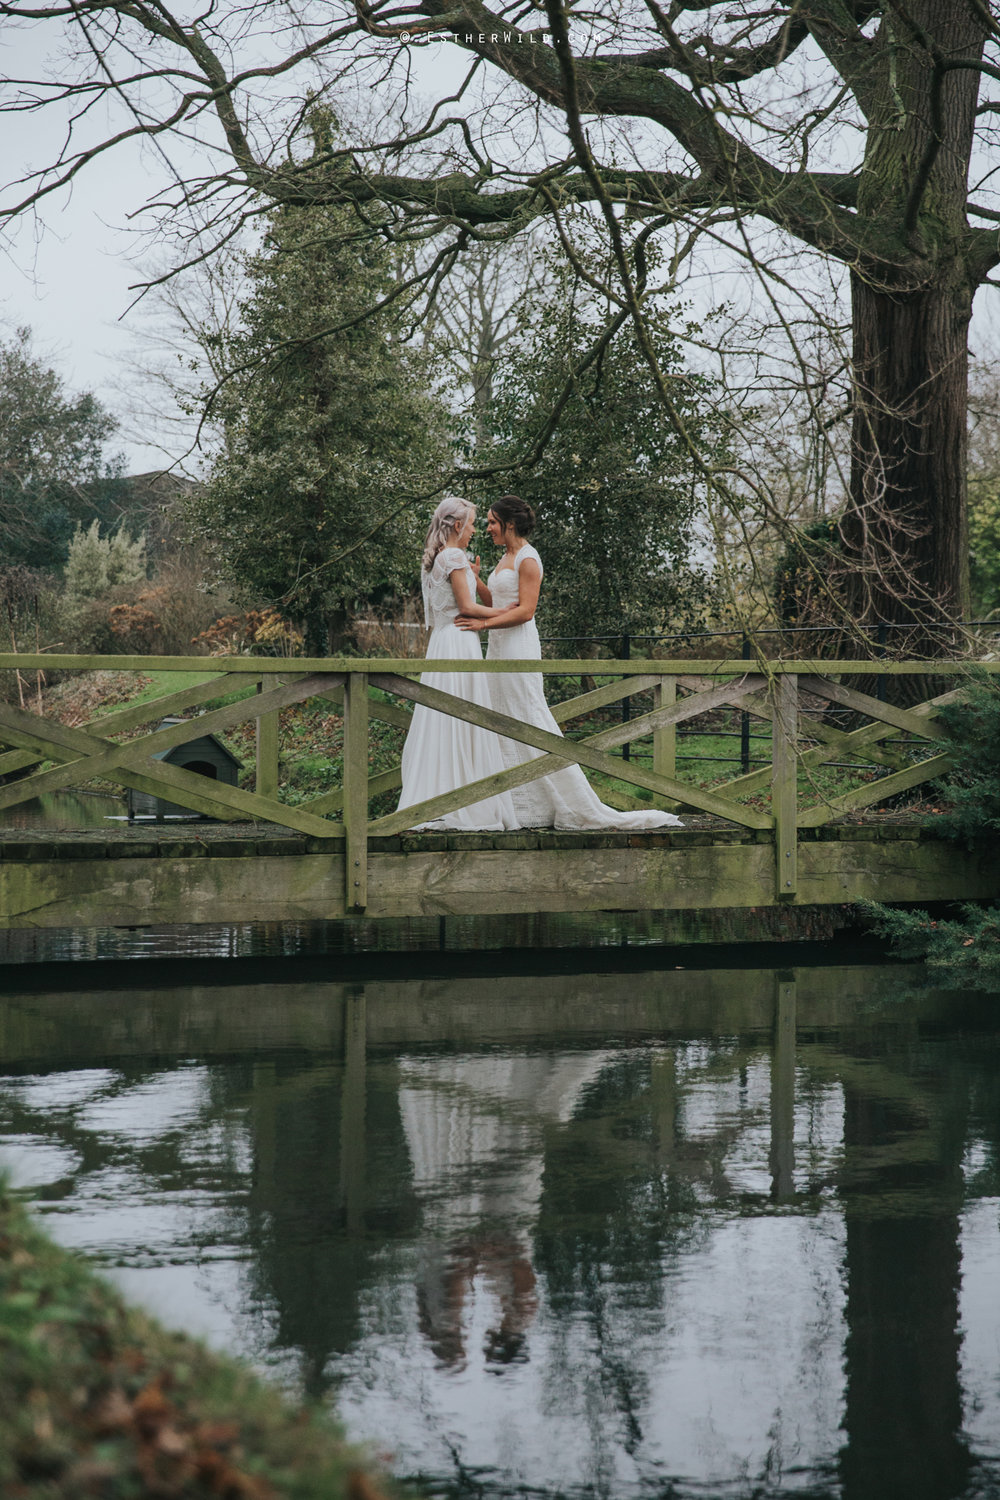 Elms_Barn_Weddings_Suffolk_Photographer_Copyright_Esther_Wild_IMG_1978.jpg